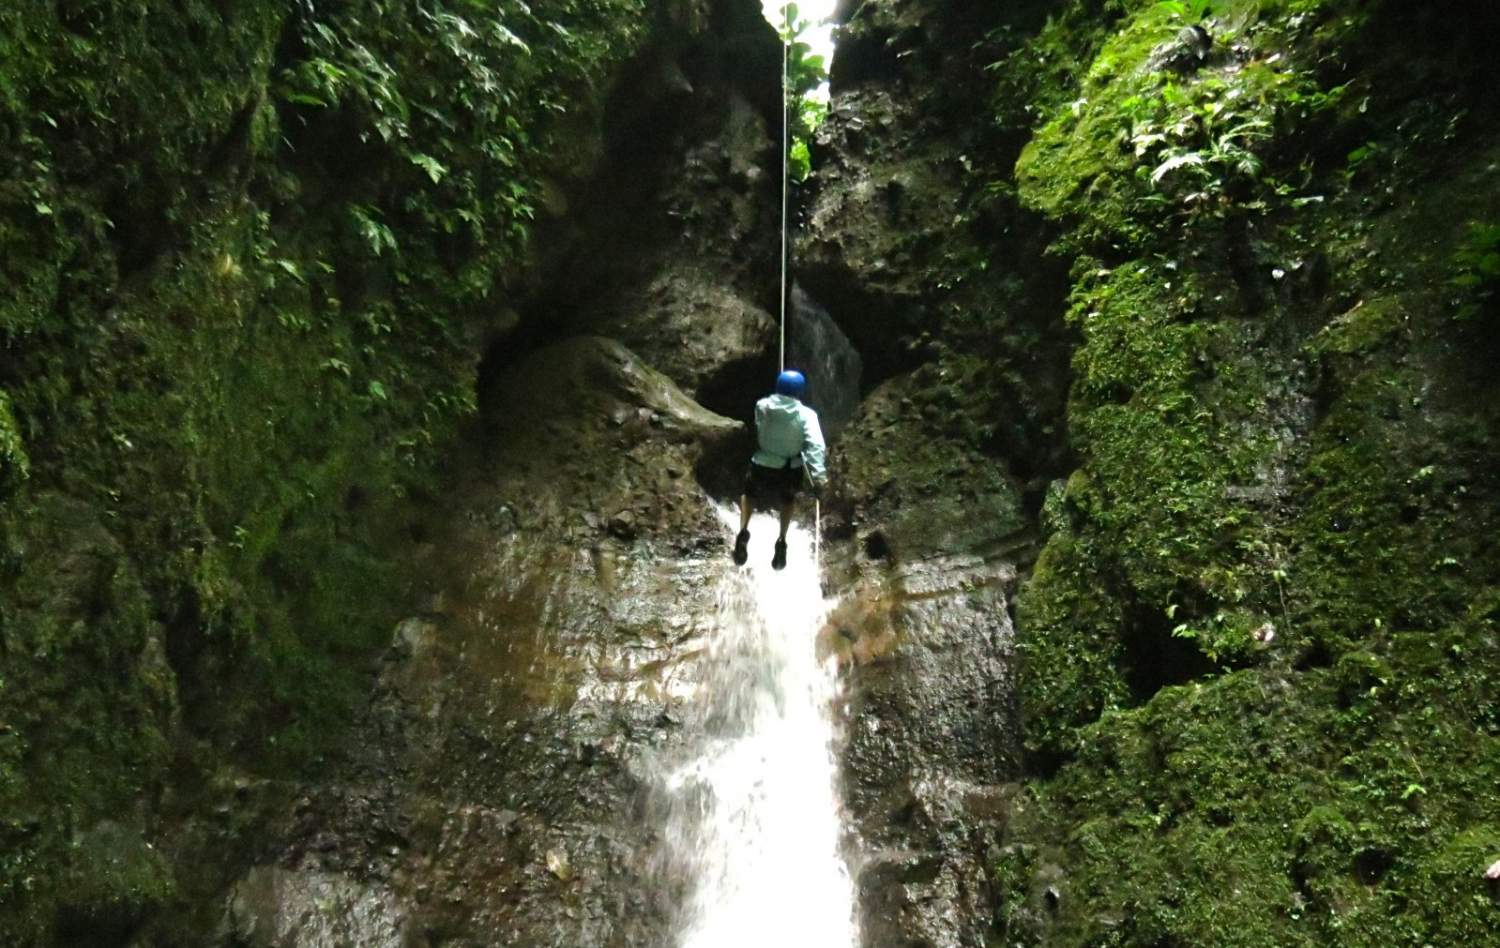 Add adventure in your wedding travel with rappelling